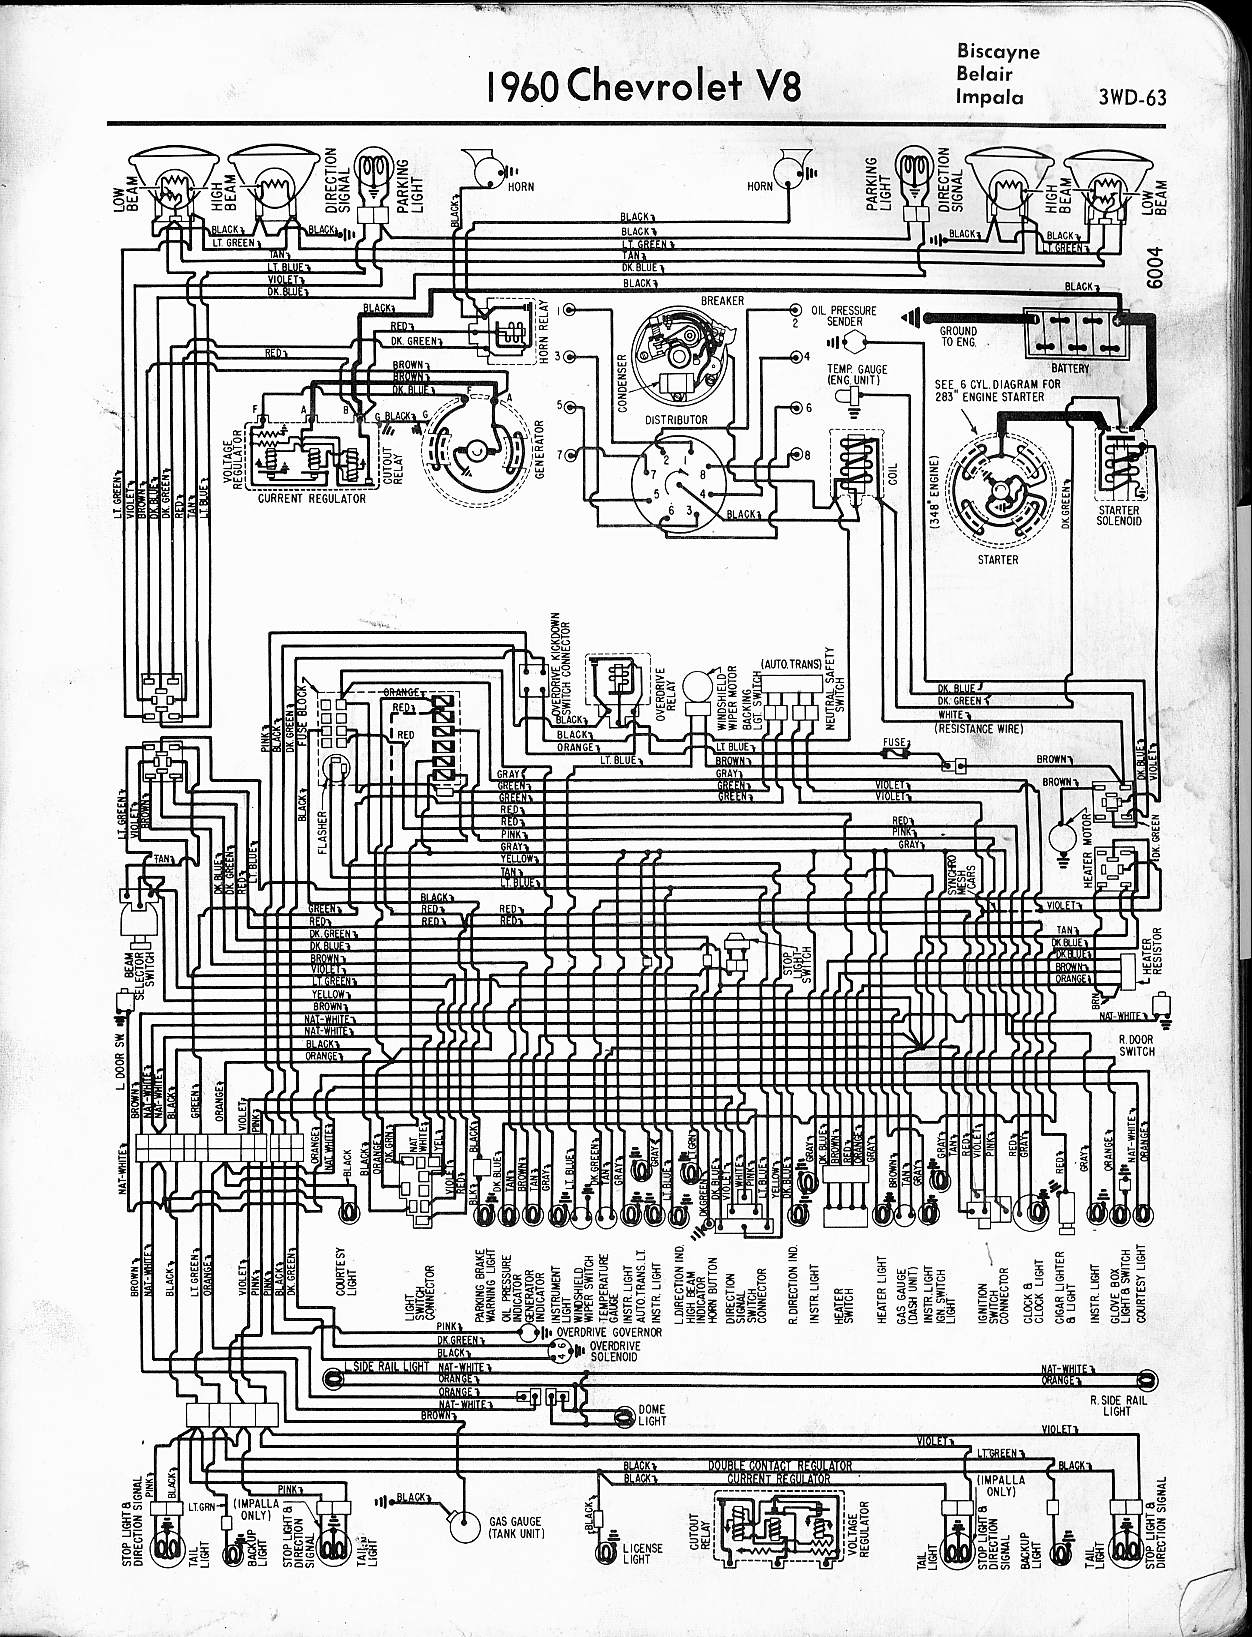 60 Apache Wiring Diagram - wiring diagrams schematics